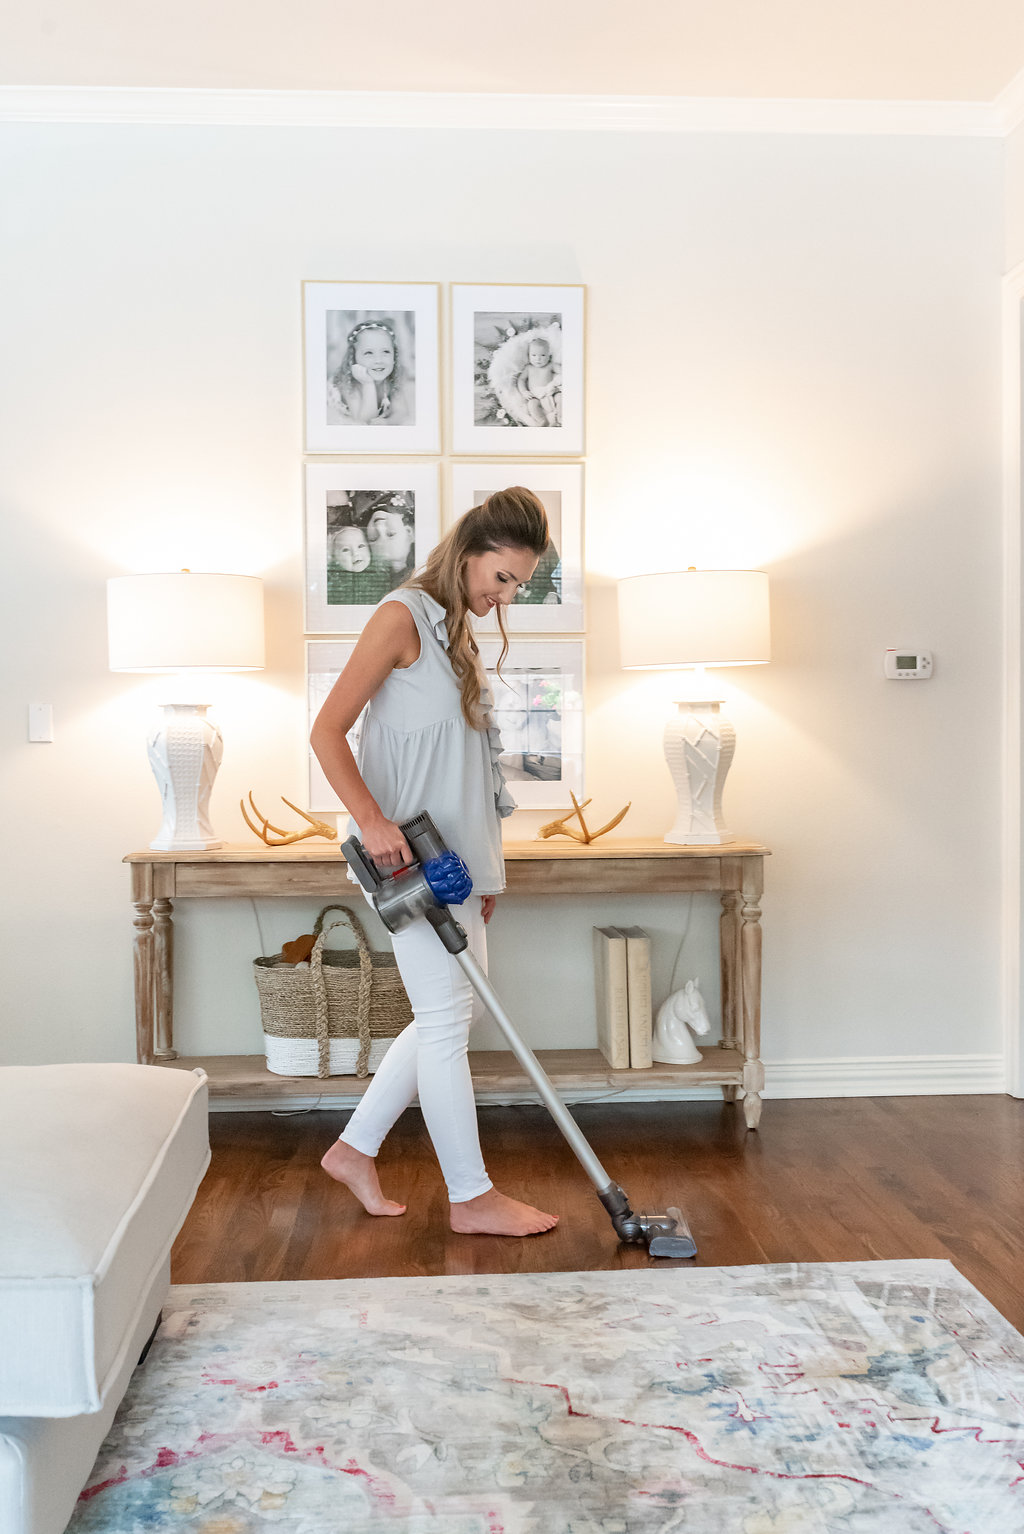 A review of the Dyson Cordless Vacuum from ebay